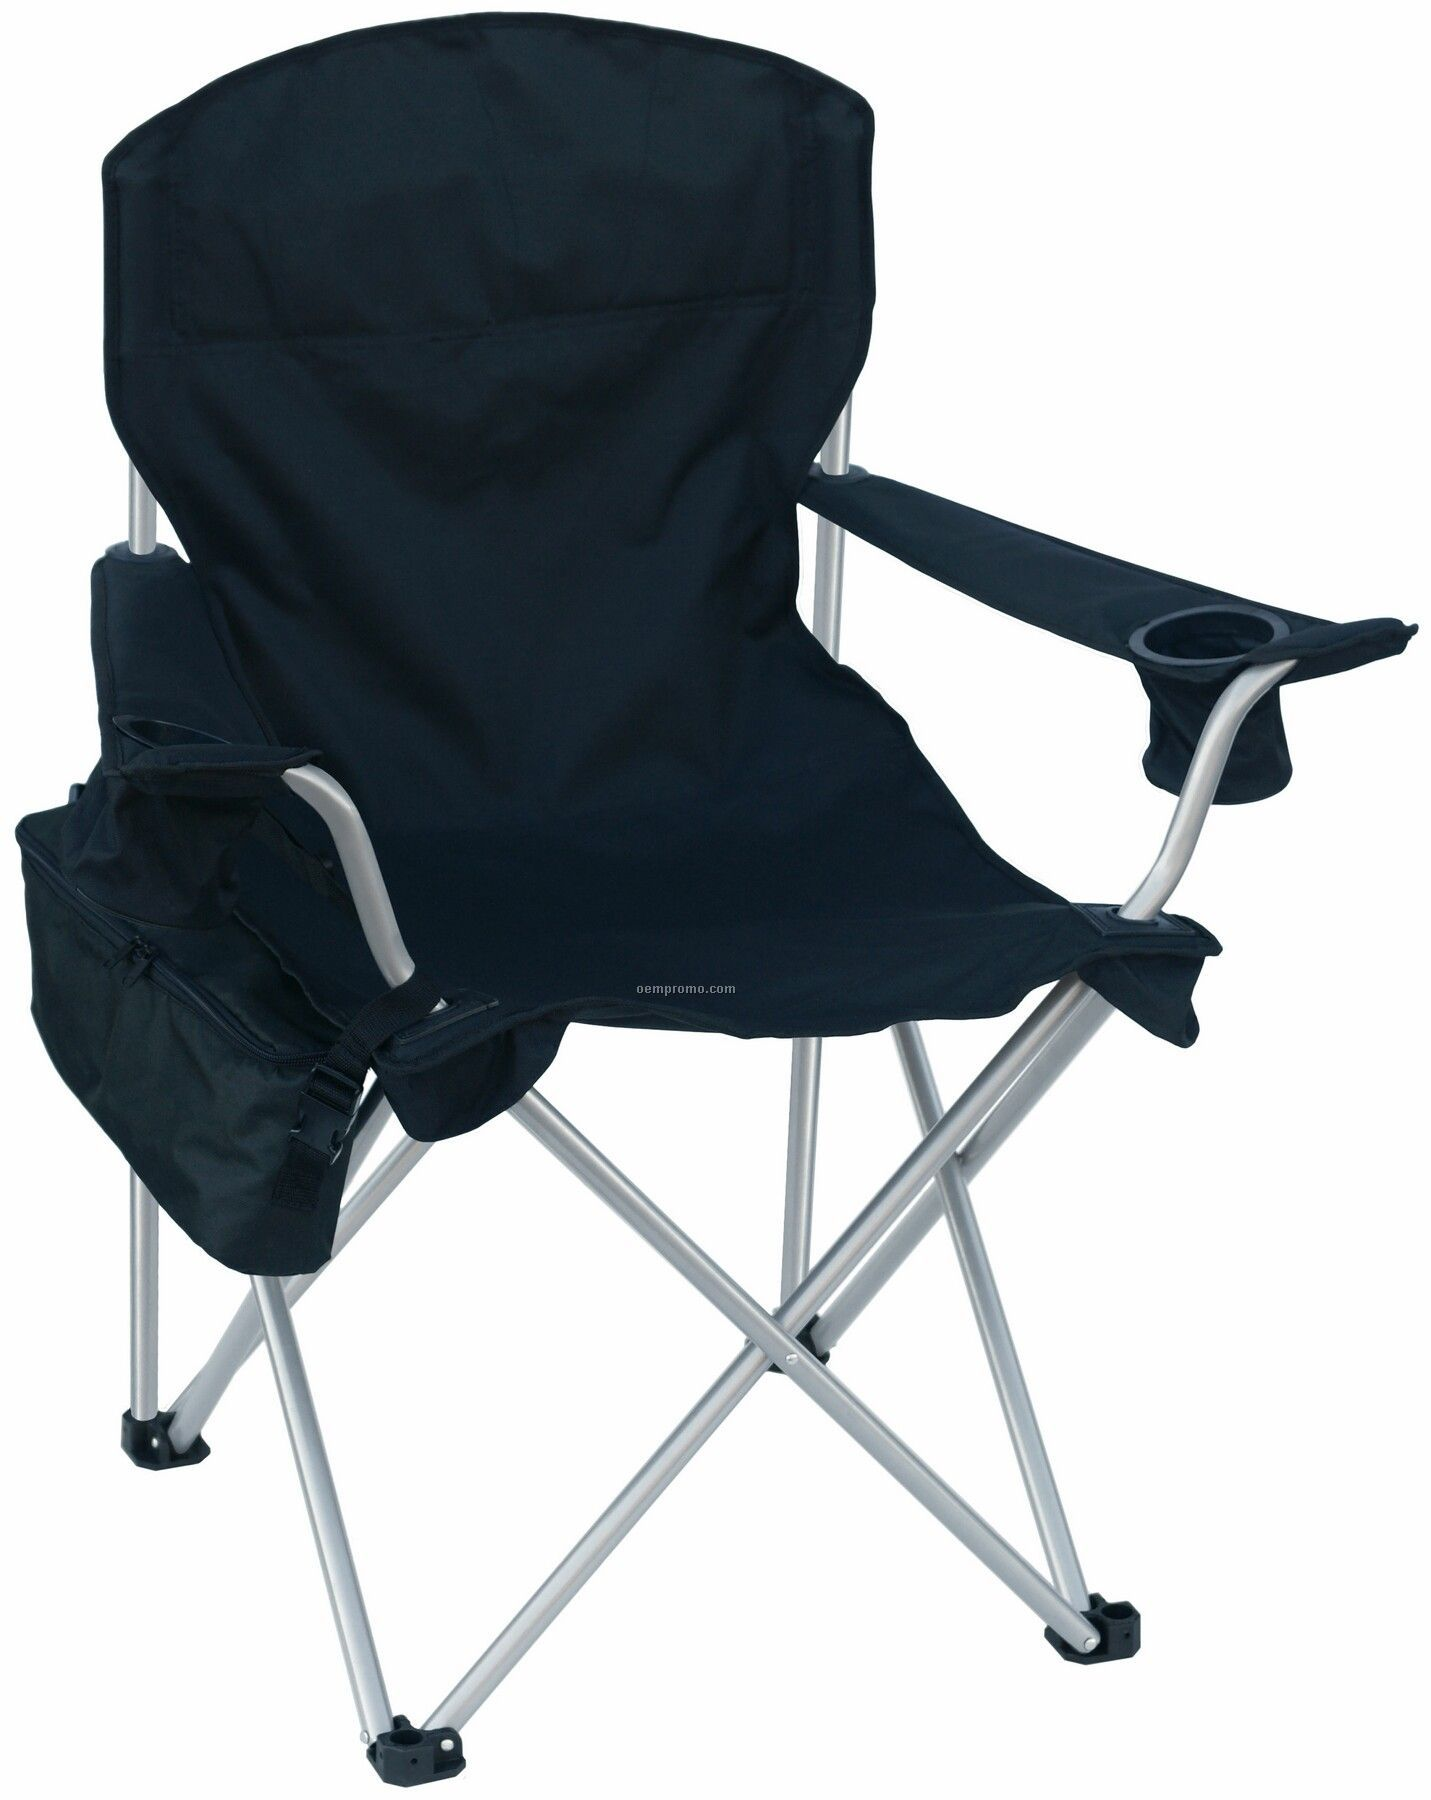 Large Folding Chair W/6 Pack Cooler And Carry Bag - 330 Lb Rating